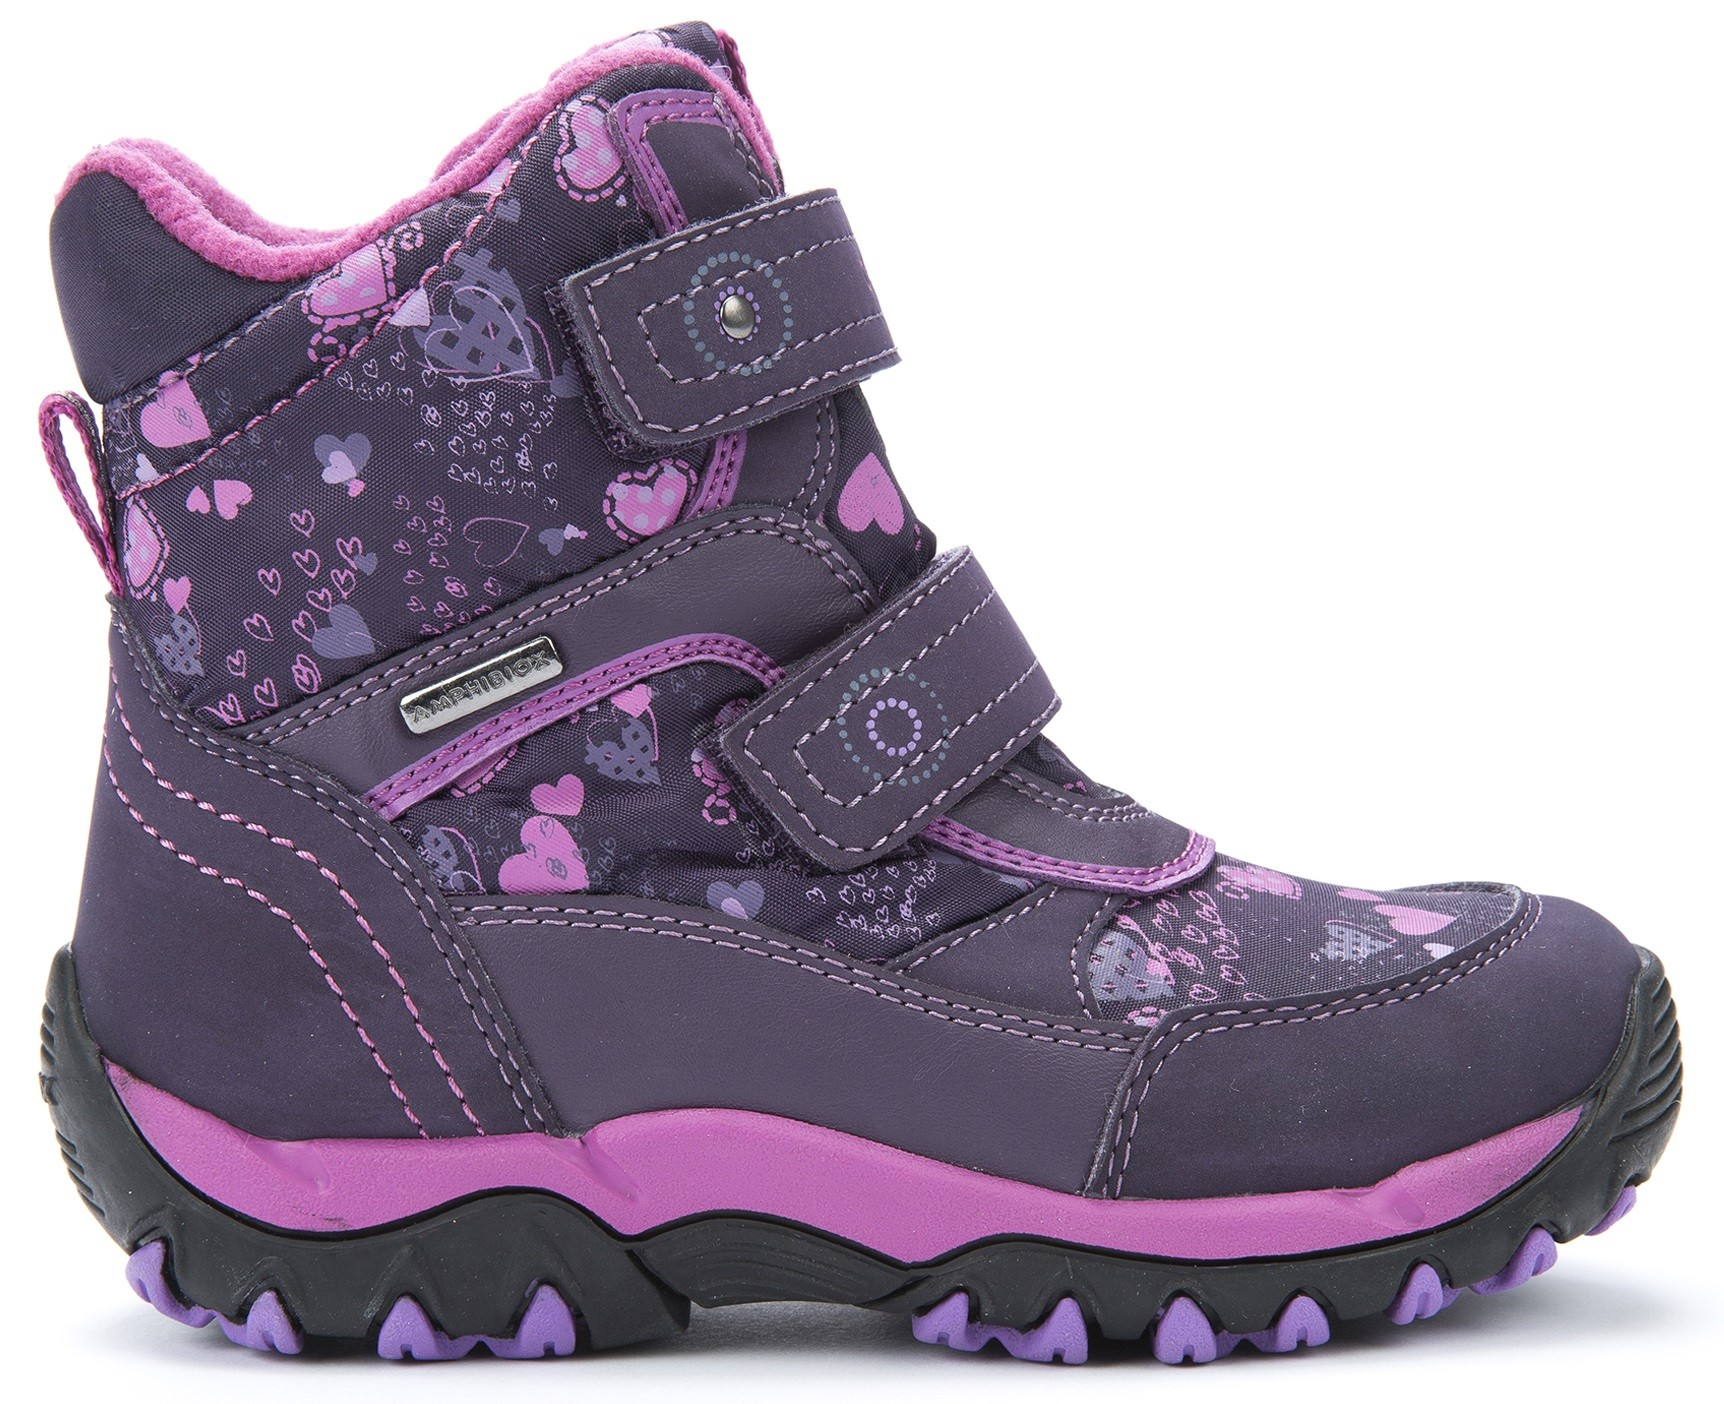 Geox Kids Shoes Reviews